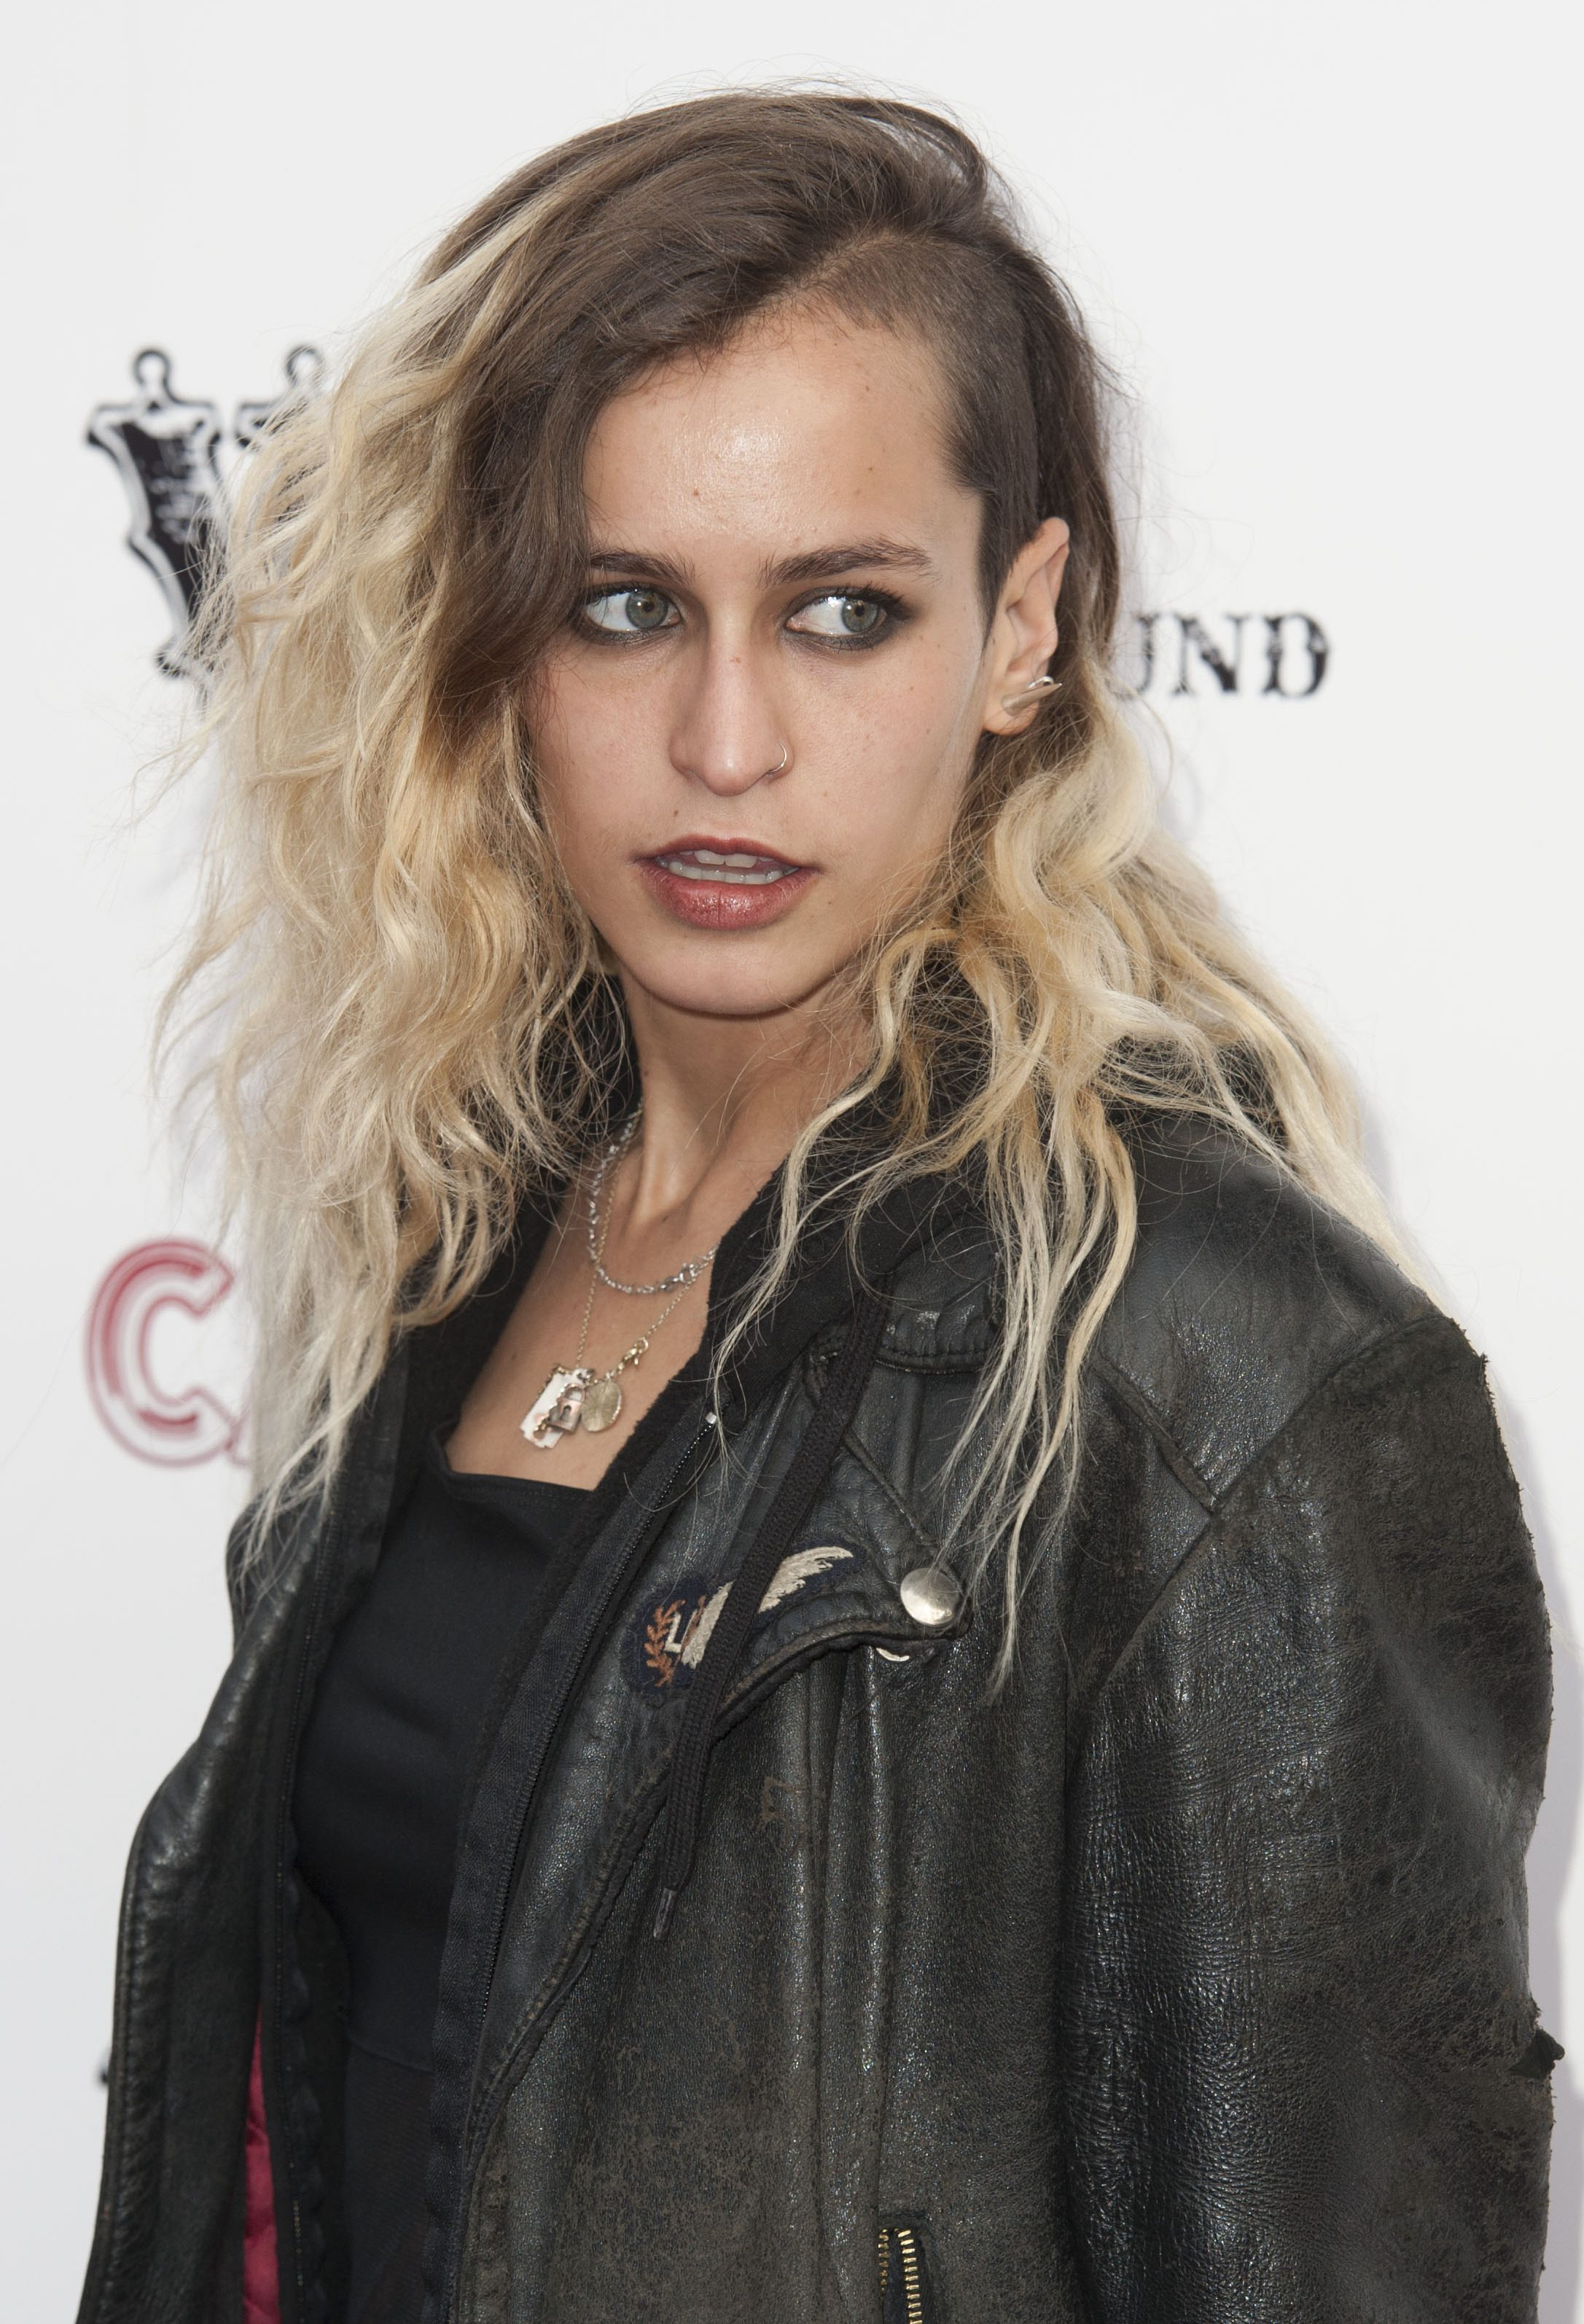 Alice Dellal Undercutting it in the Middle